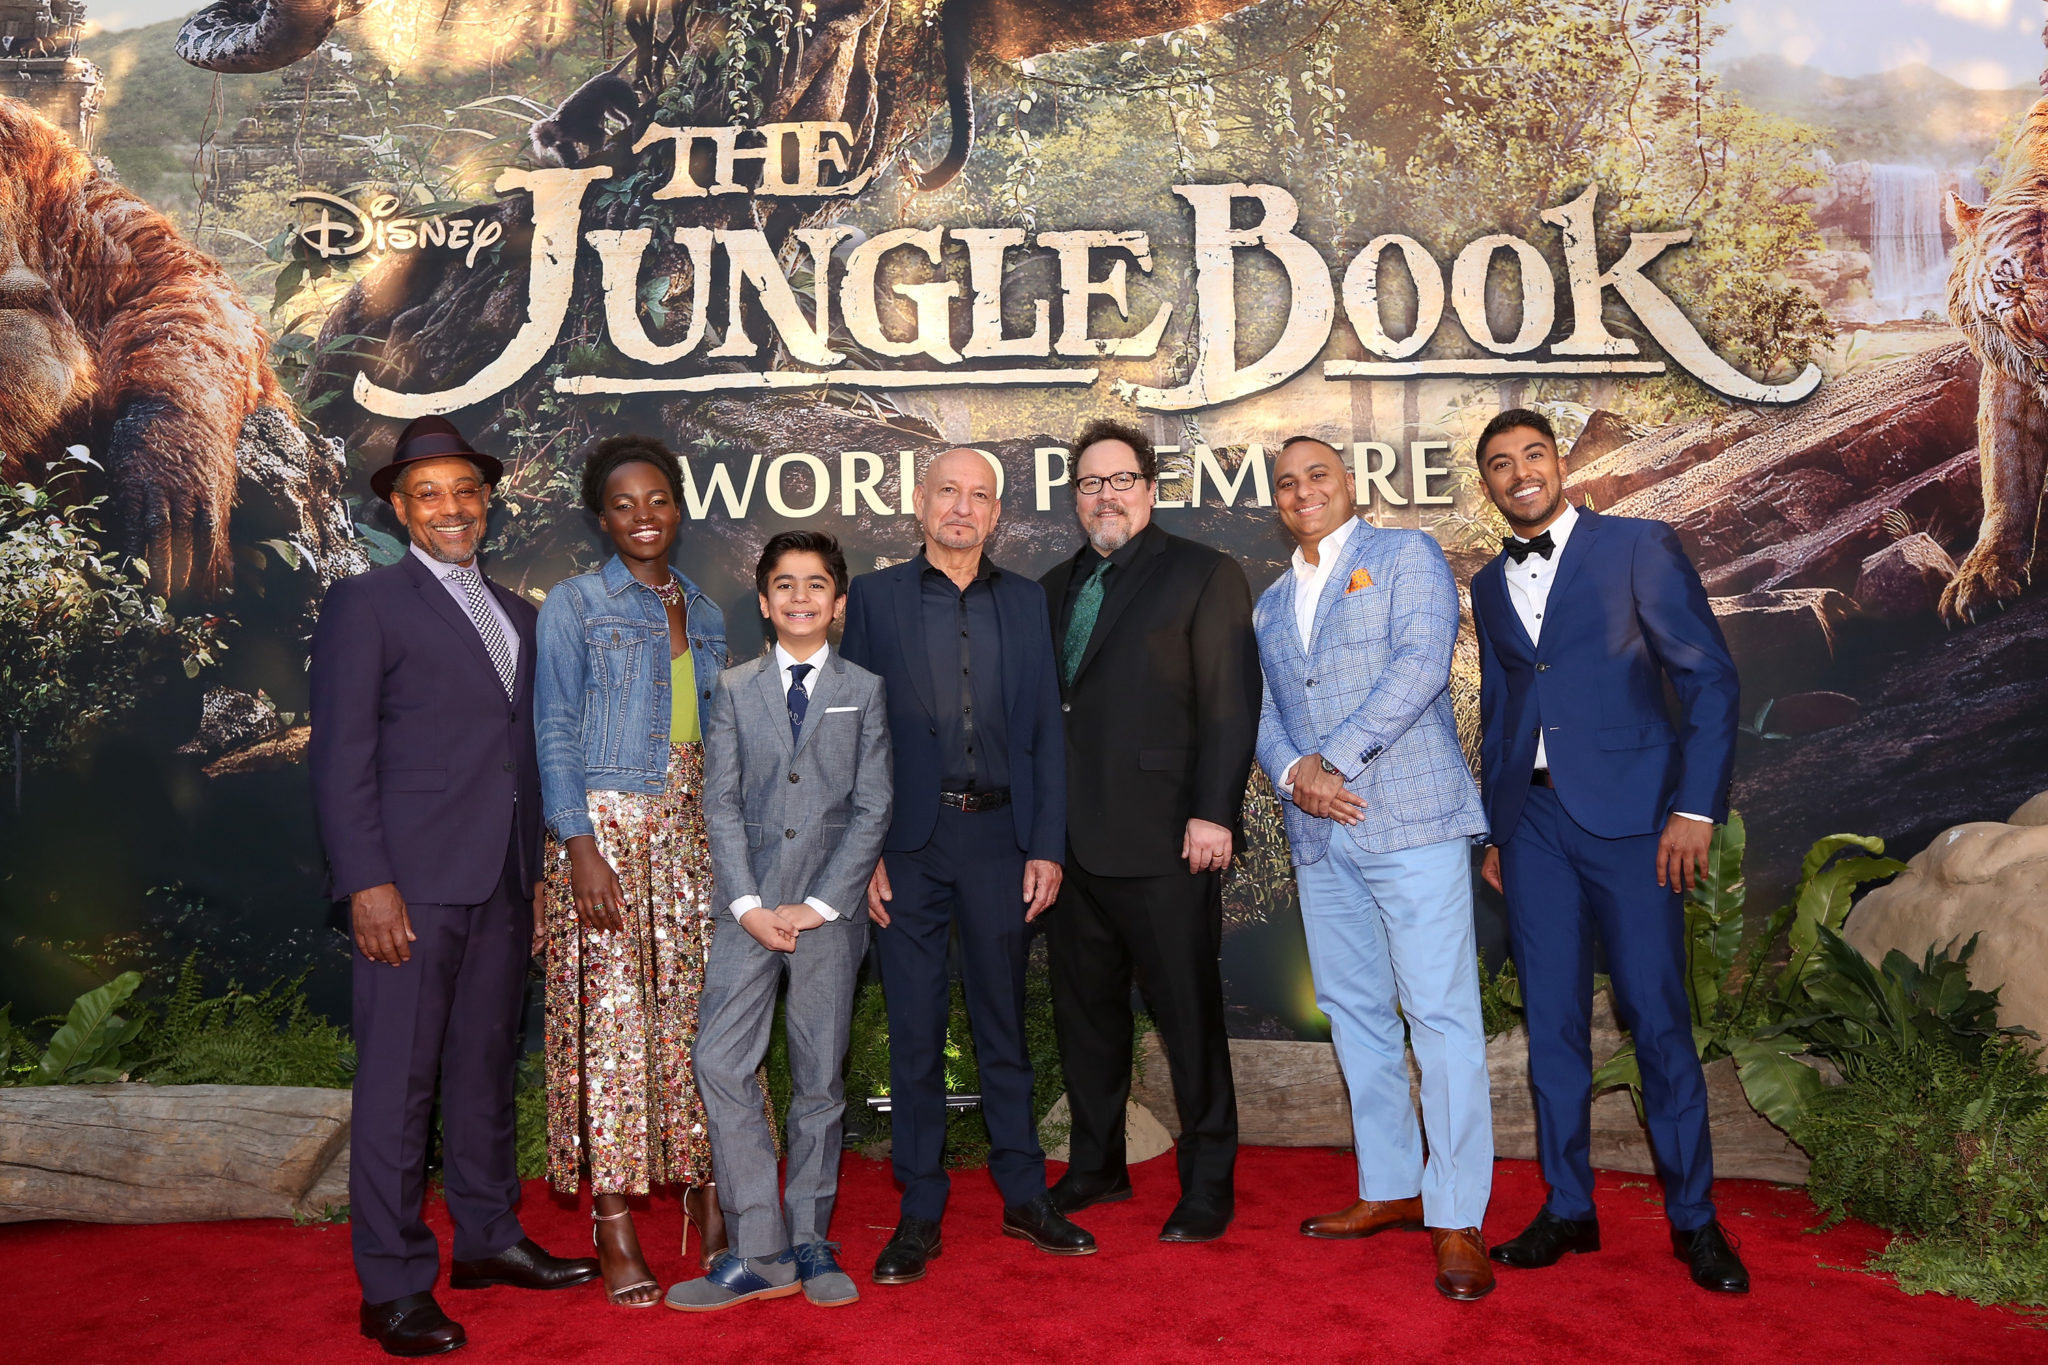 'The Jungle Book' Red Carpet World Premiere In Hollywood